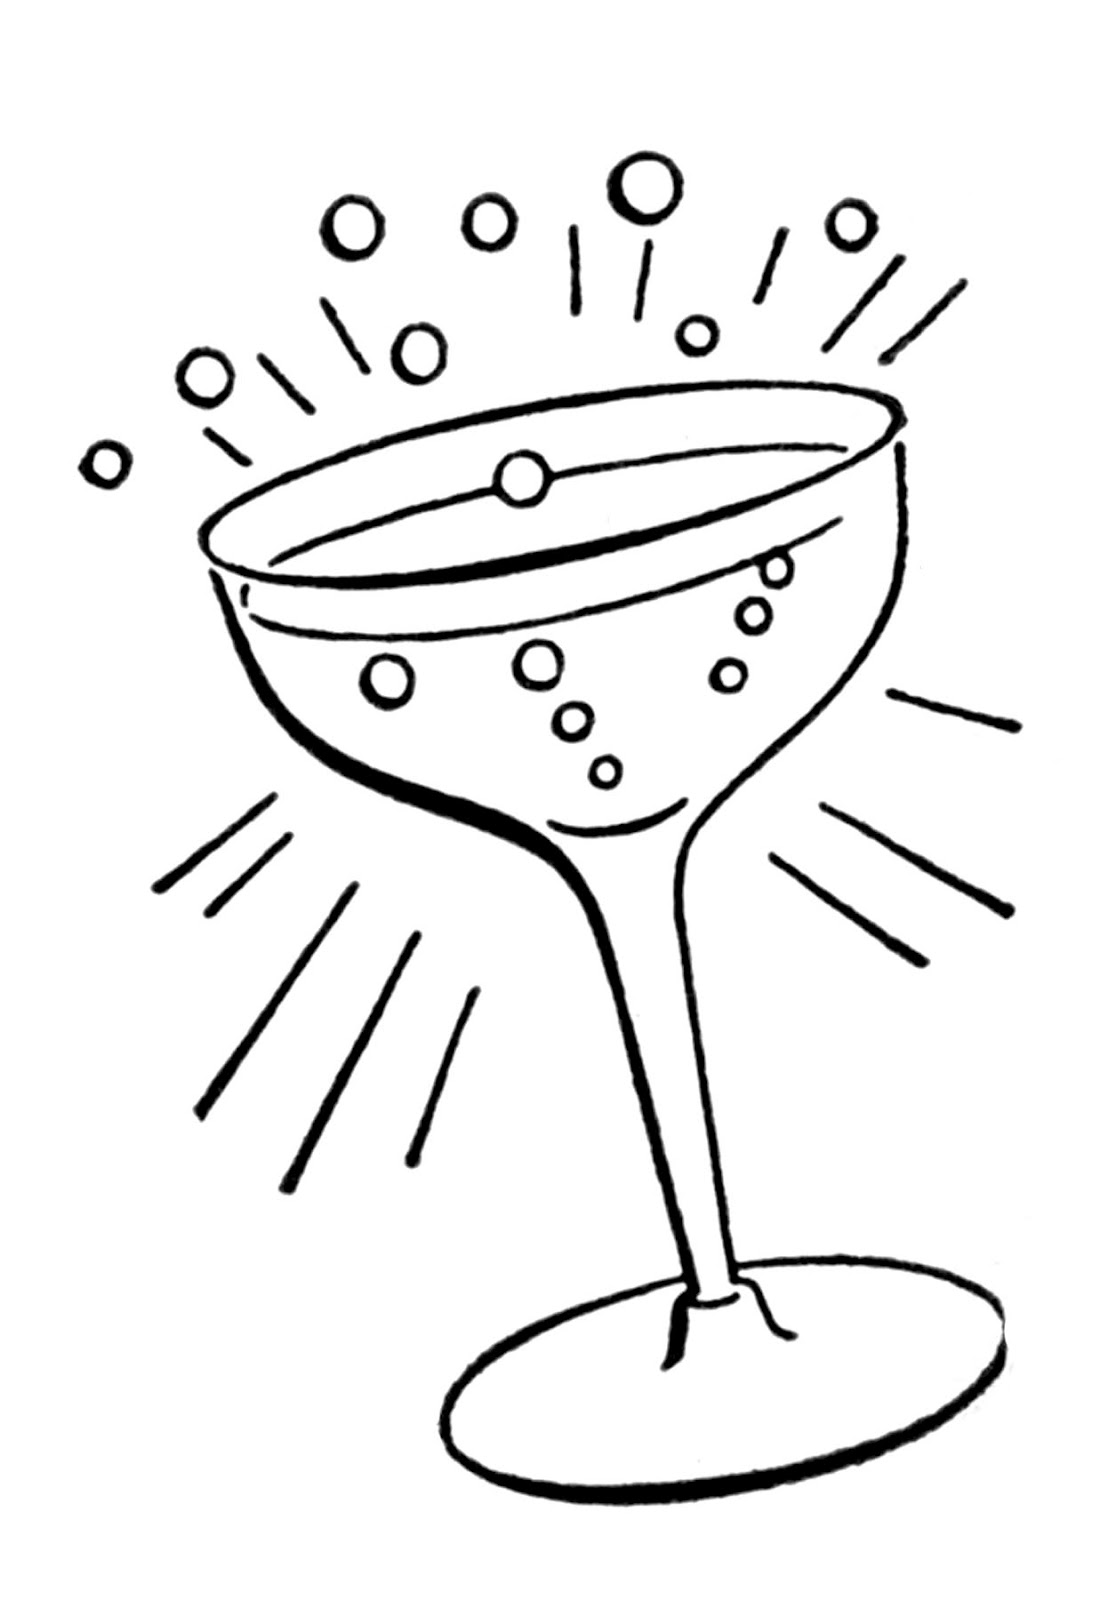 clip art library Retro Line Drawings